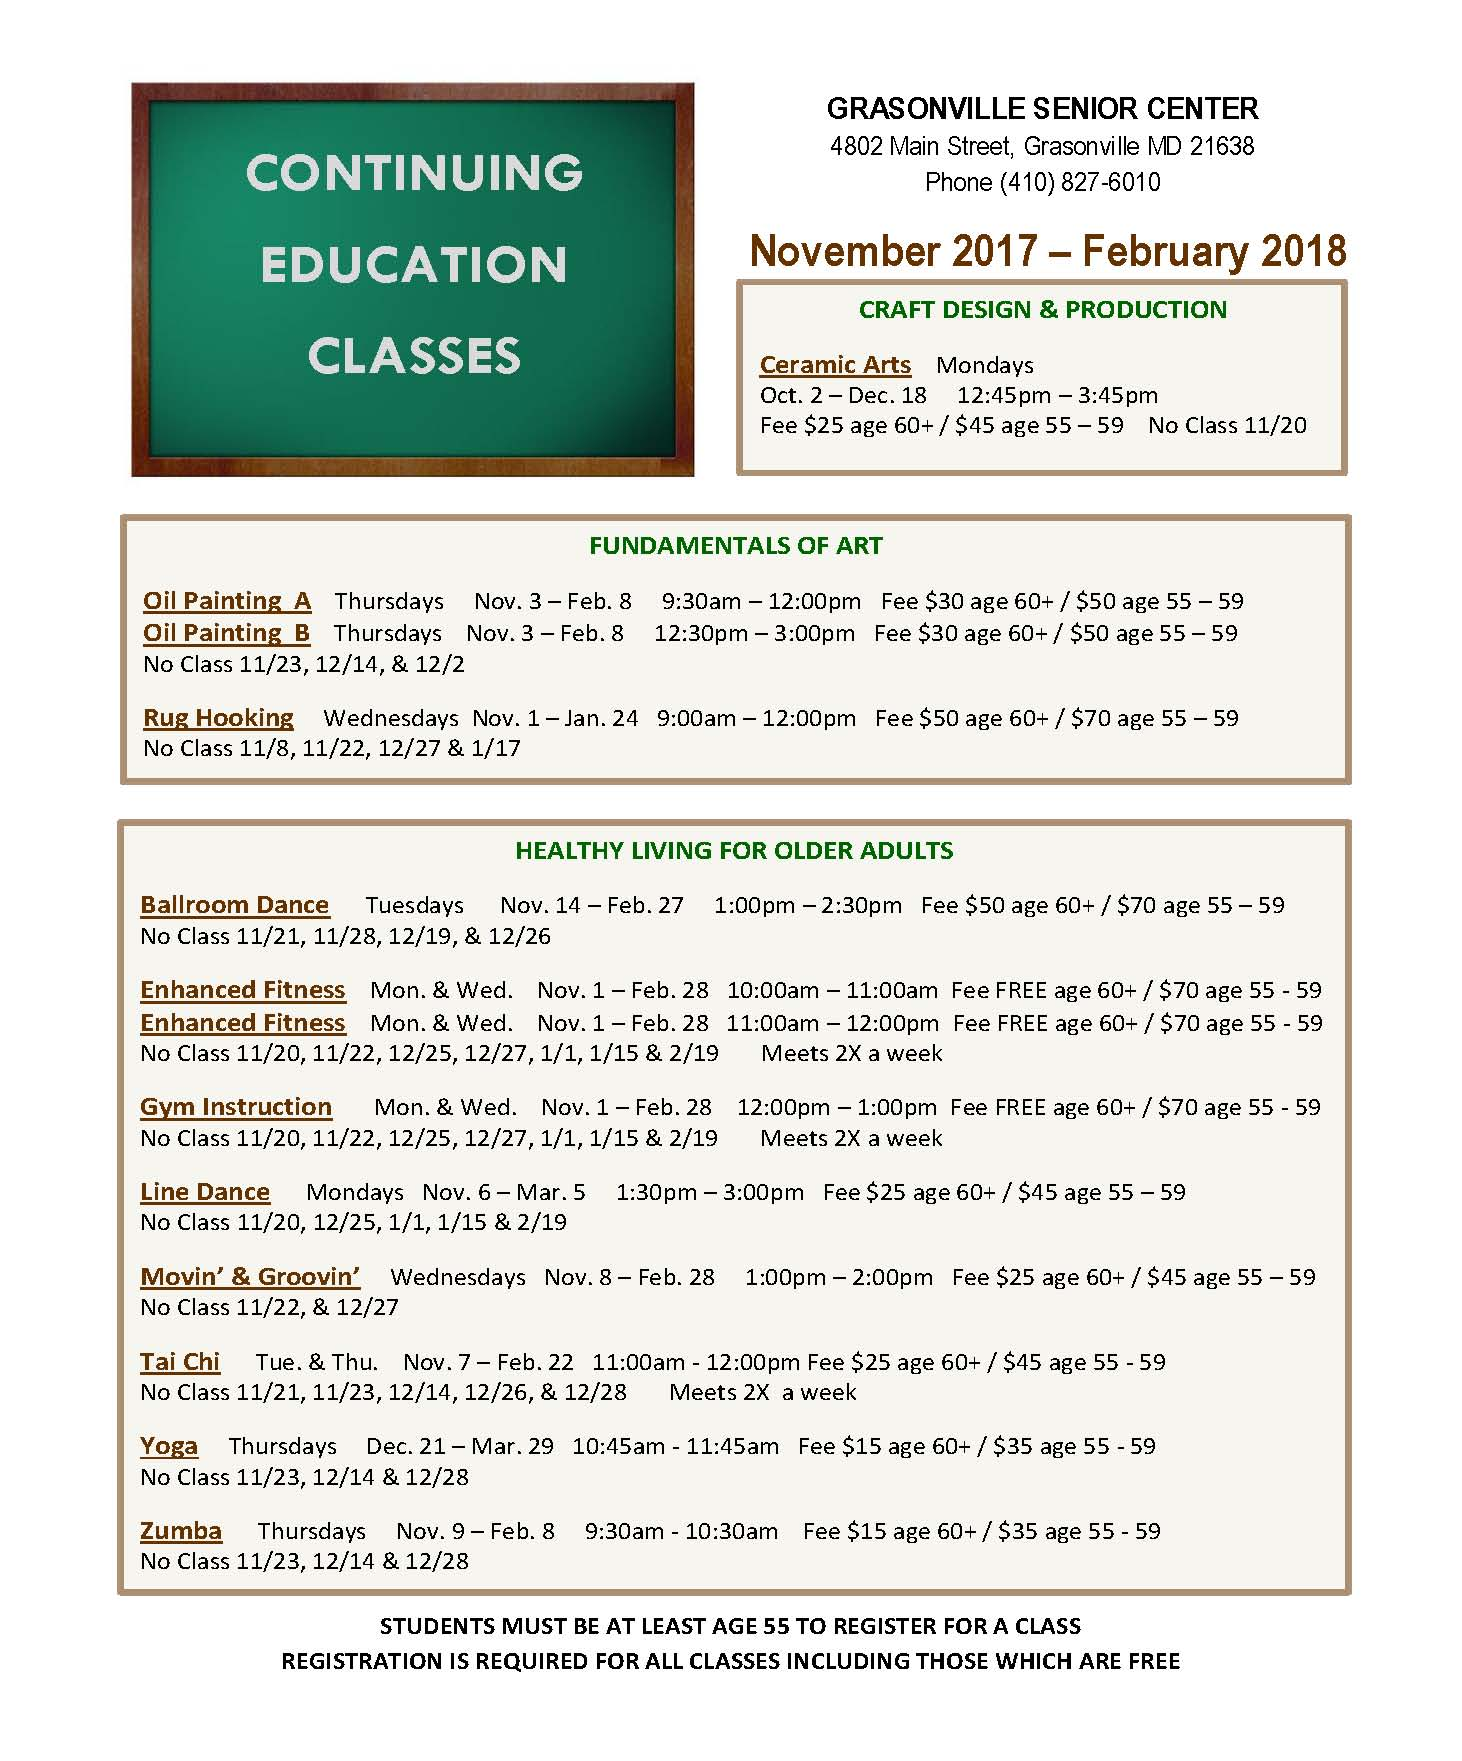 2017_11 GSC College Classes